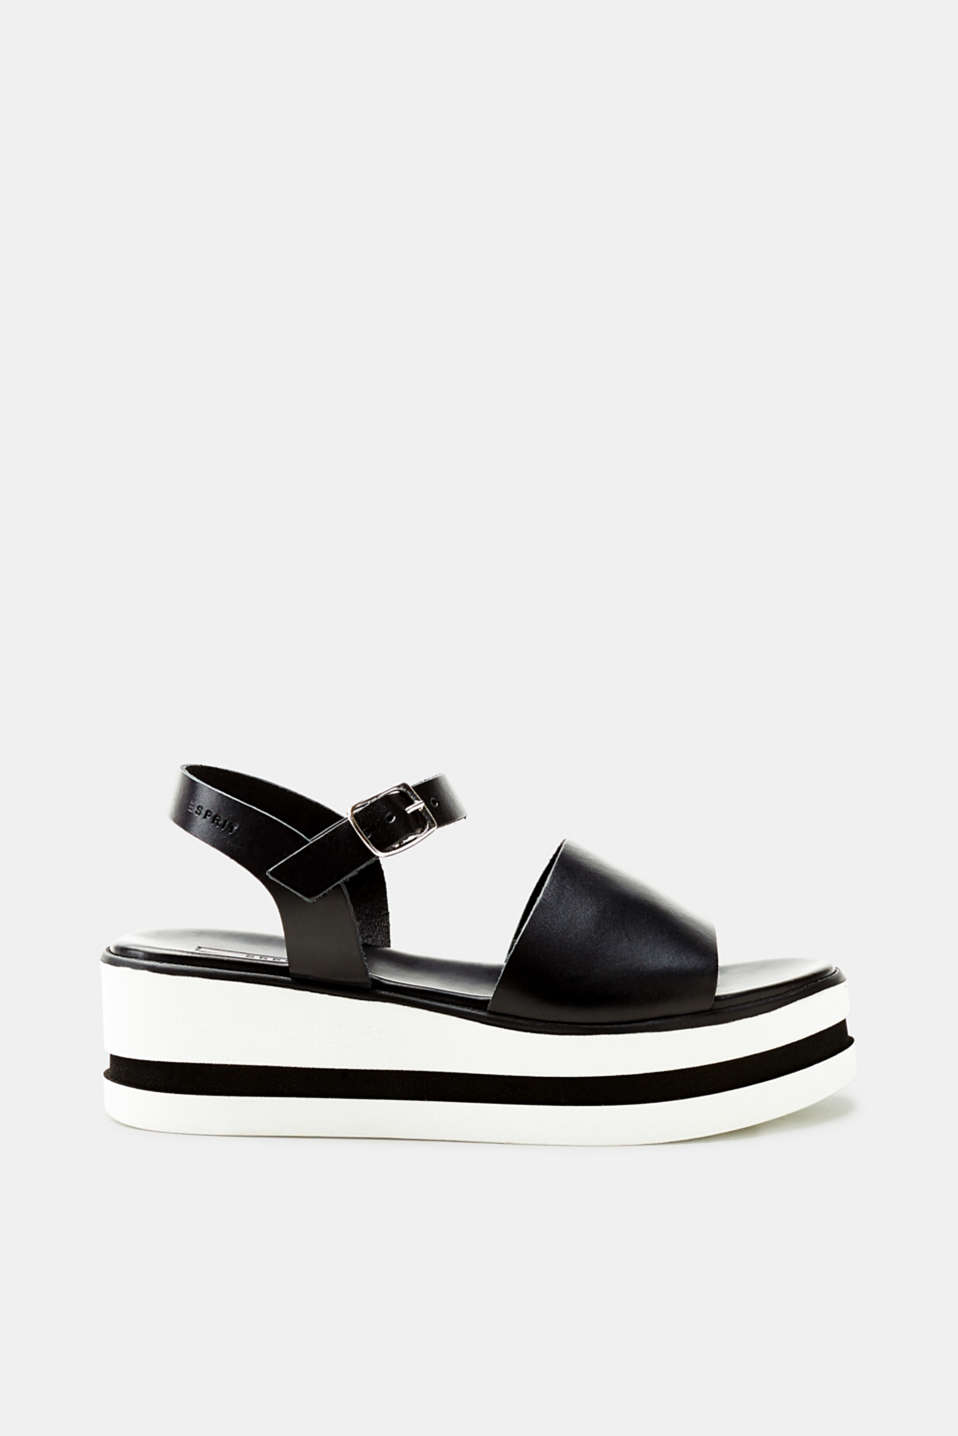 Esprit - Platform sandals with leather straps